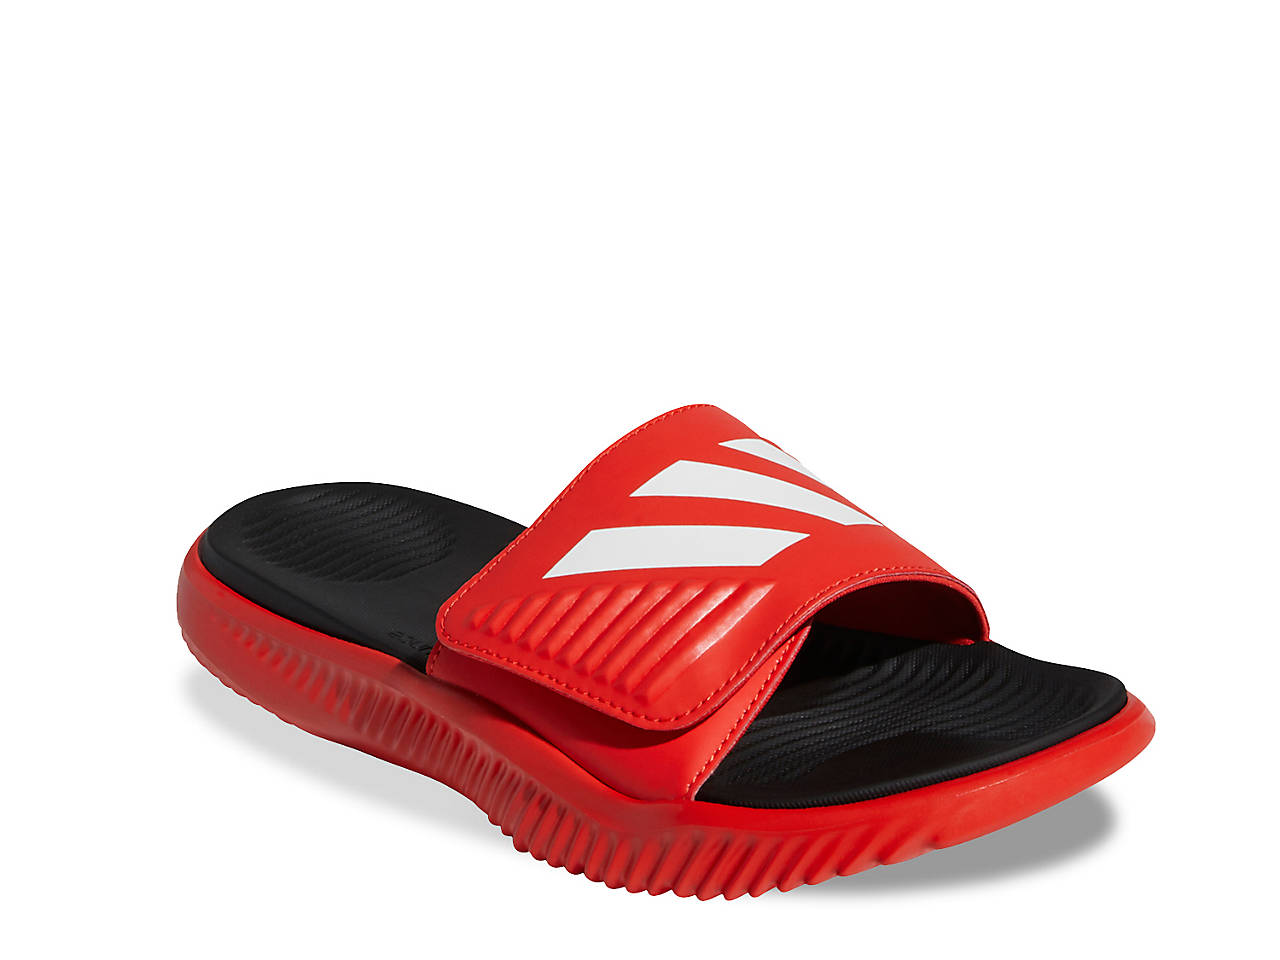 c61def06704 adidas Alphabounce Slide Sandal - Men s Men s Shoes